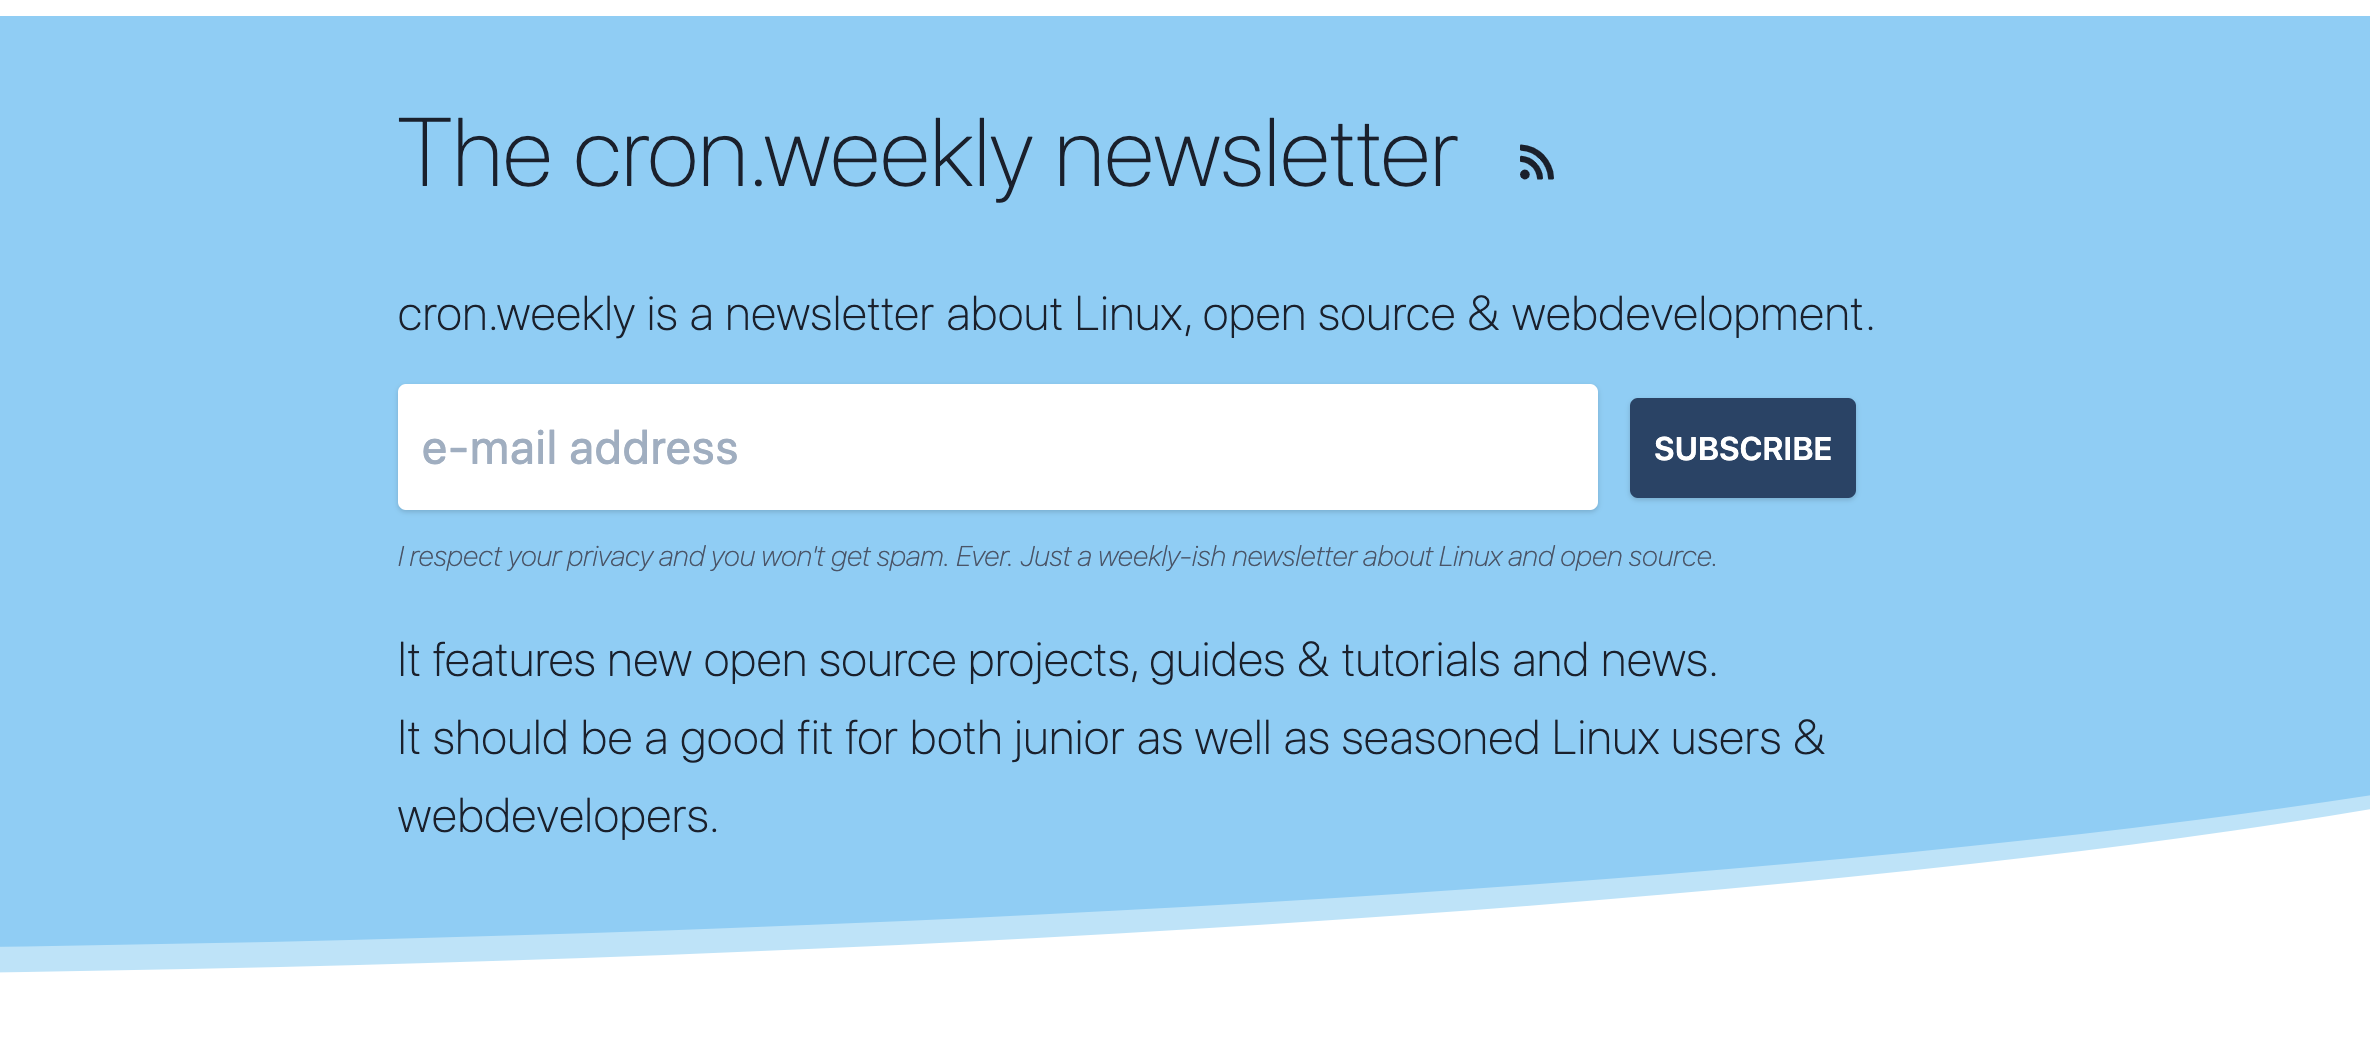 The cron weekly newsletter